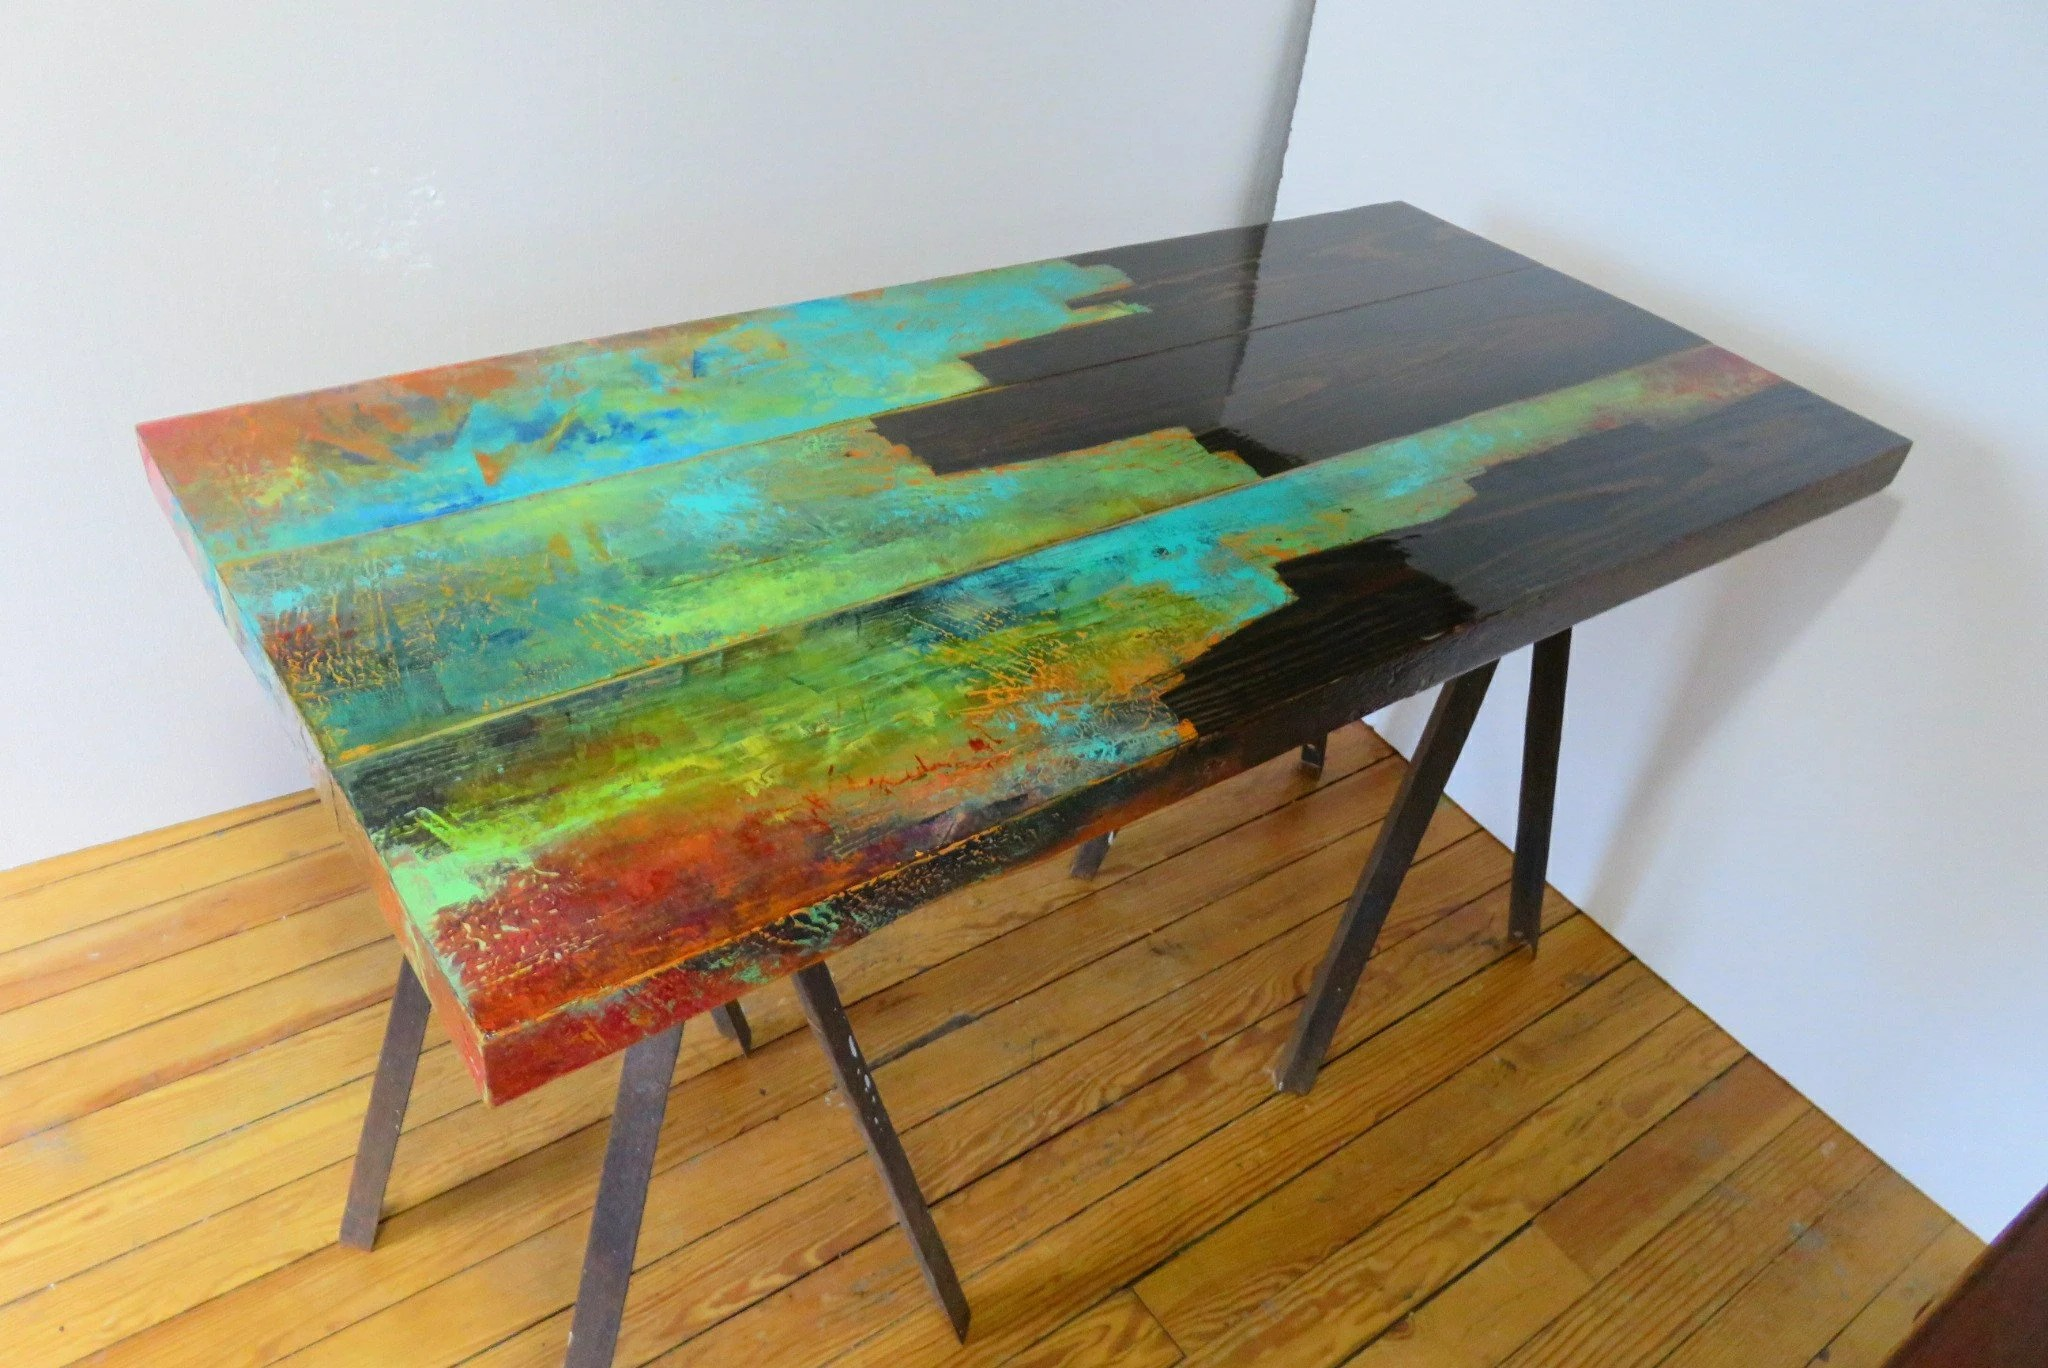 jewel tone painted coffee table abstract art combined with rustic look of reclaimed wood unique urban art industrial chic pipe legs